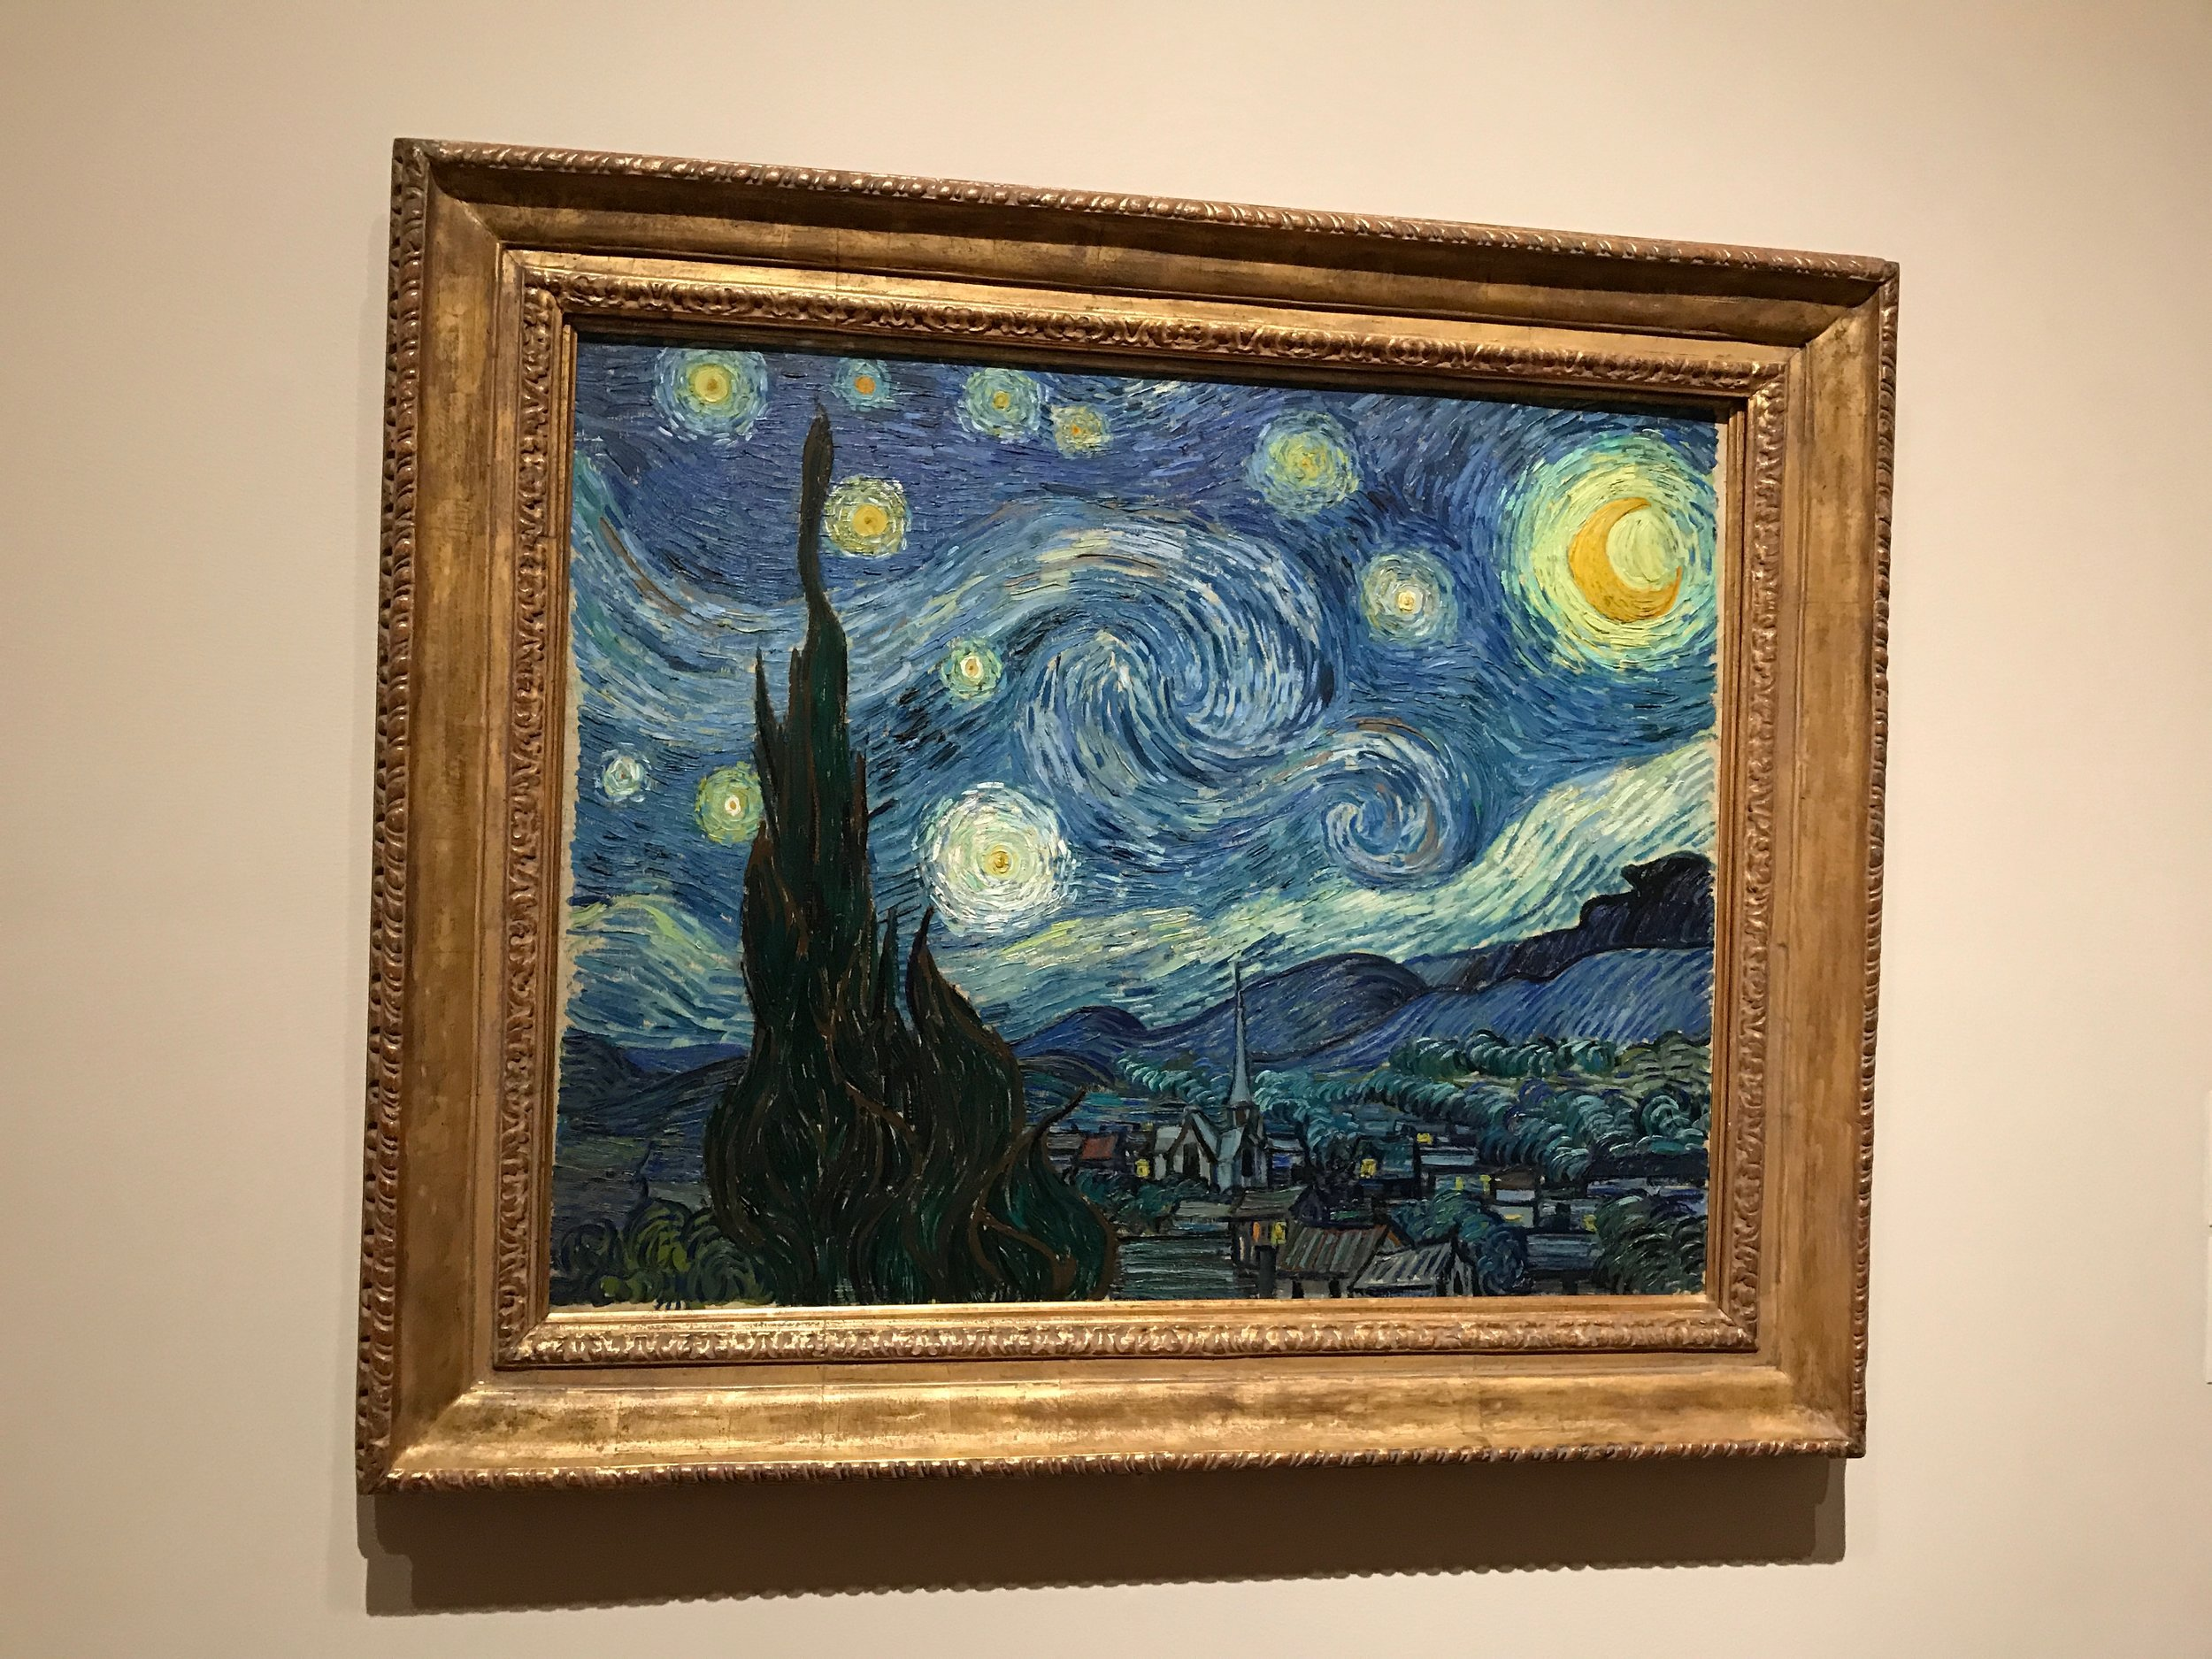 The Starry Night Painting by Vincent van Gogh - MoMa